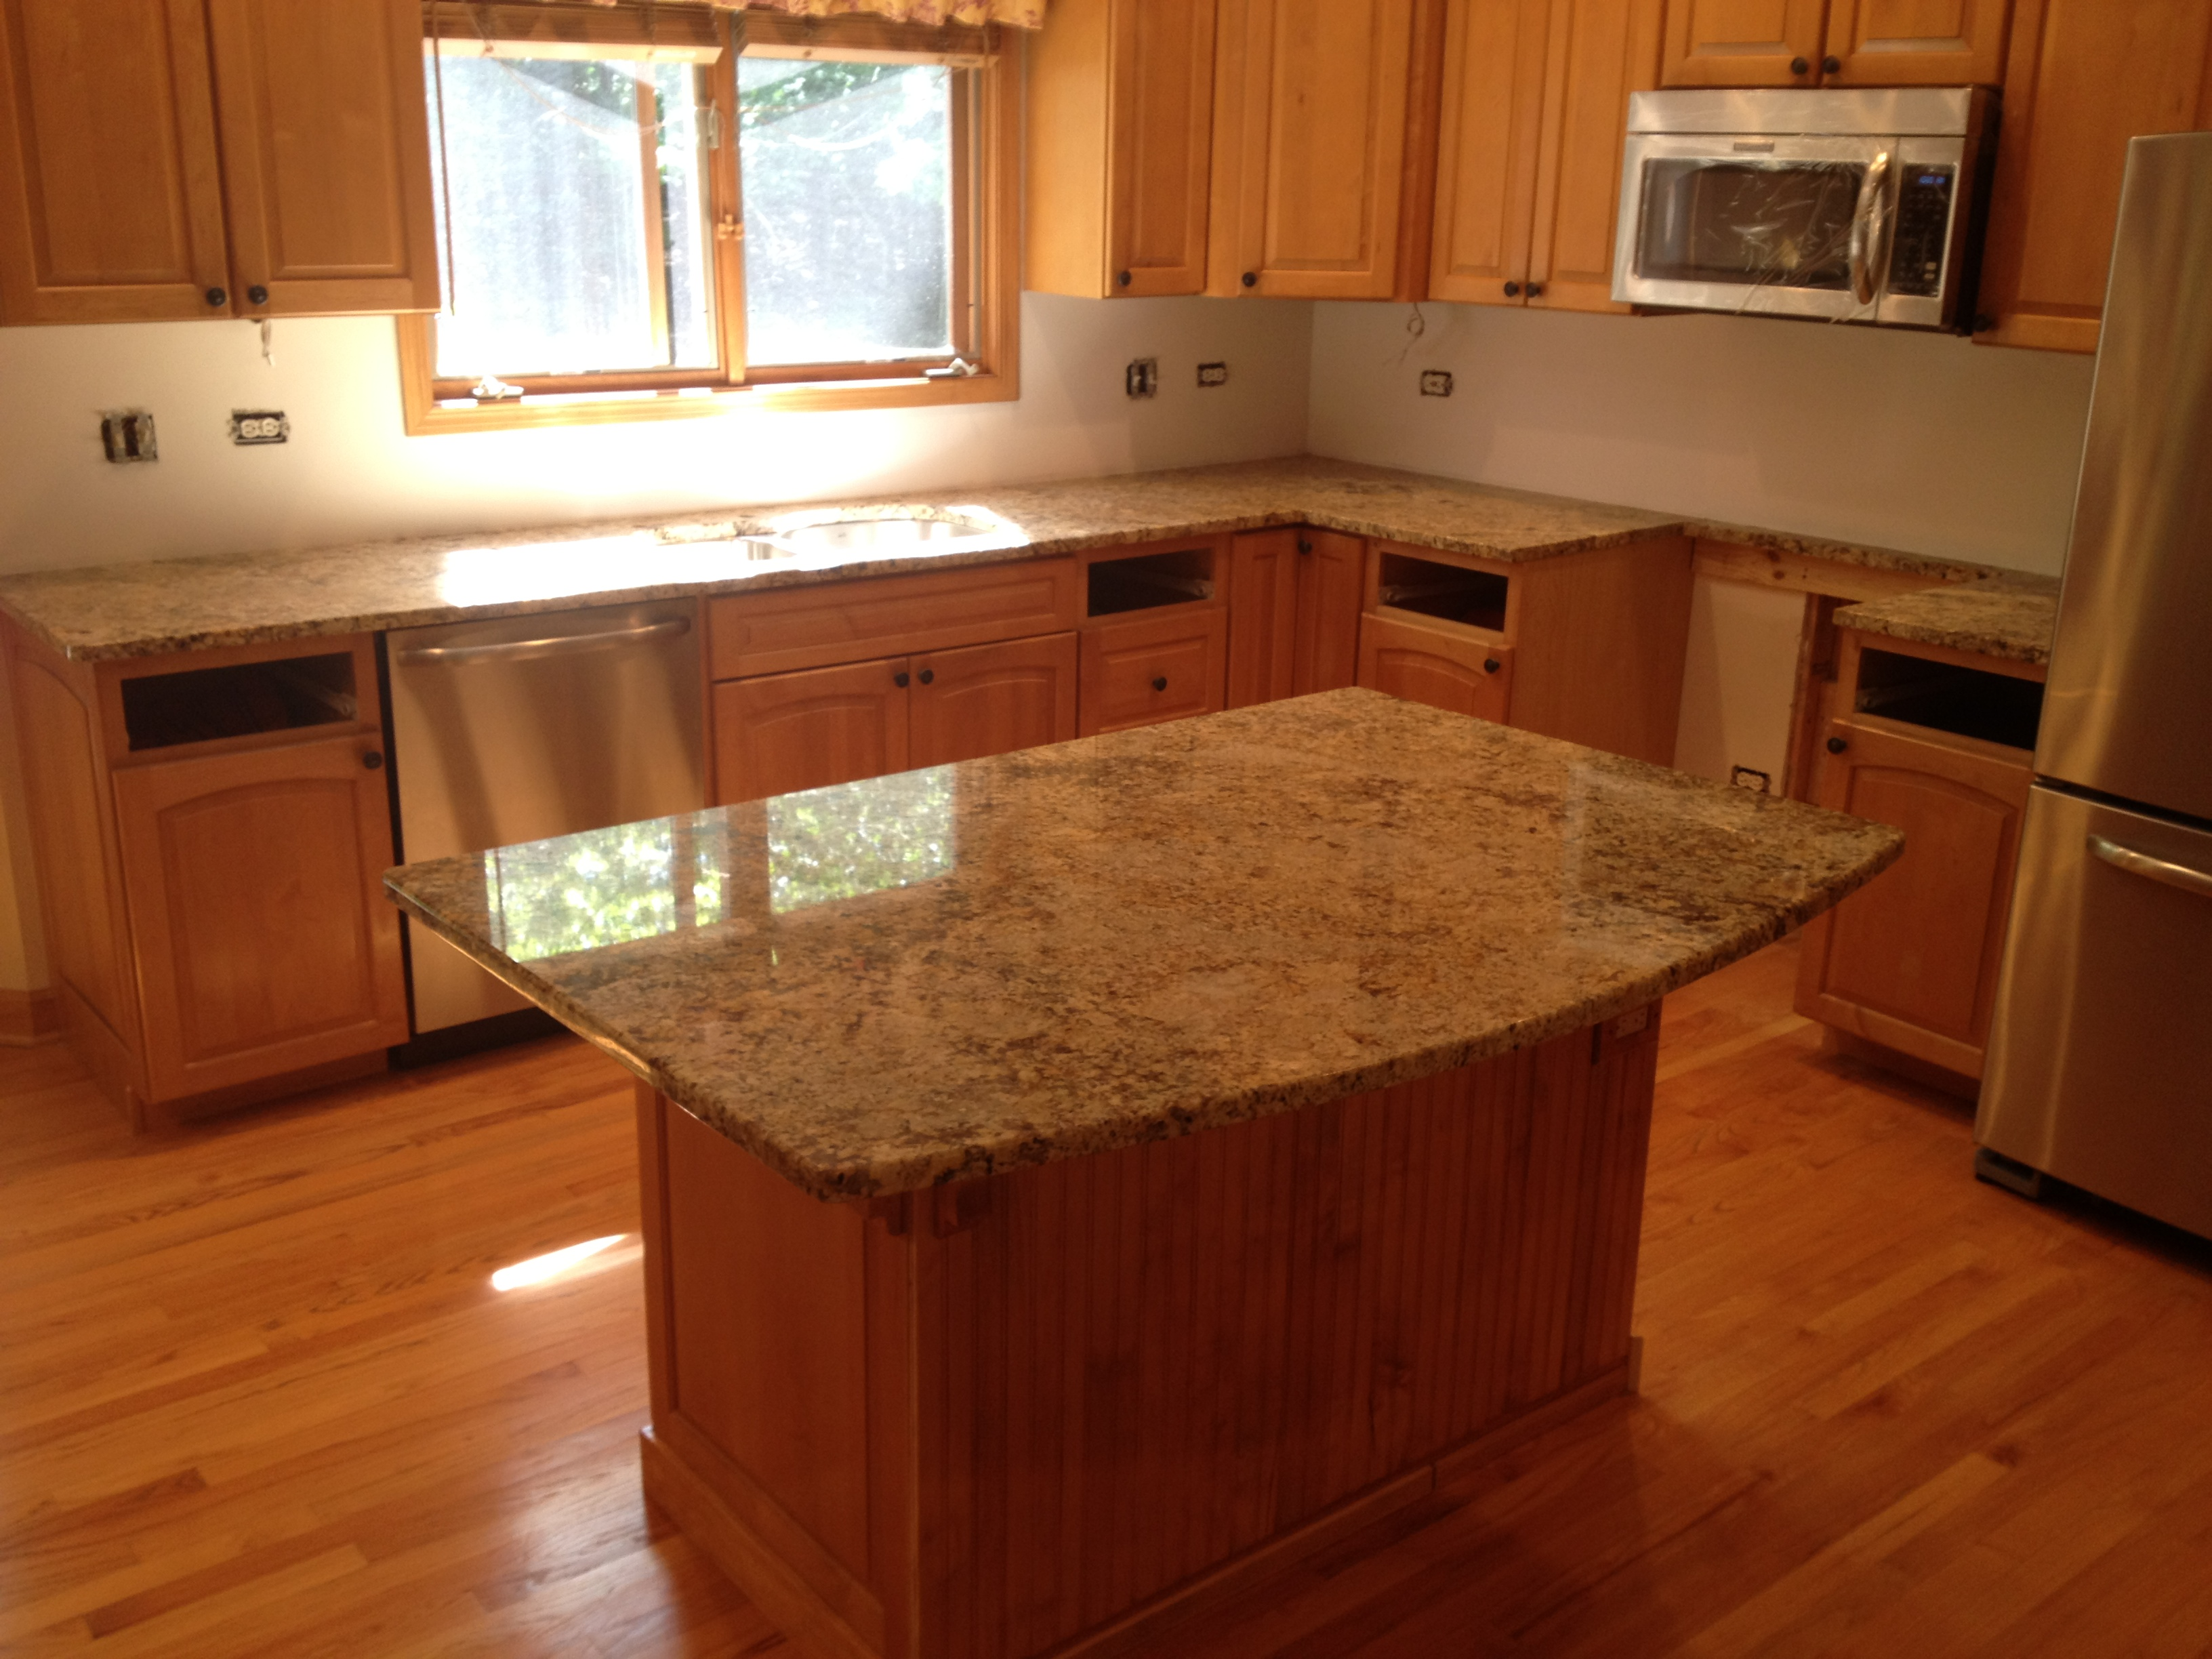 Image of: Lowes Quartz Countertop Colors